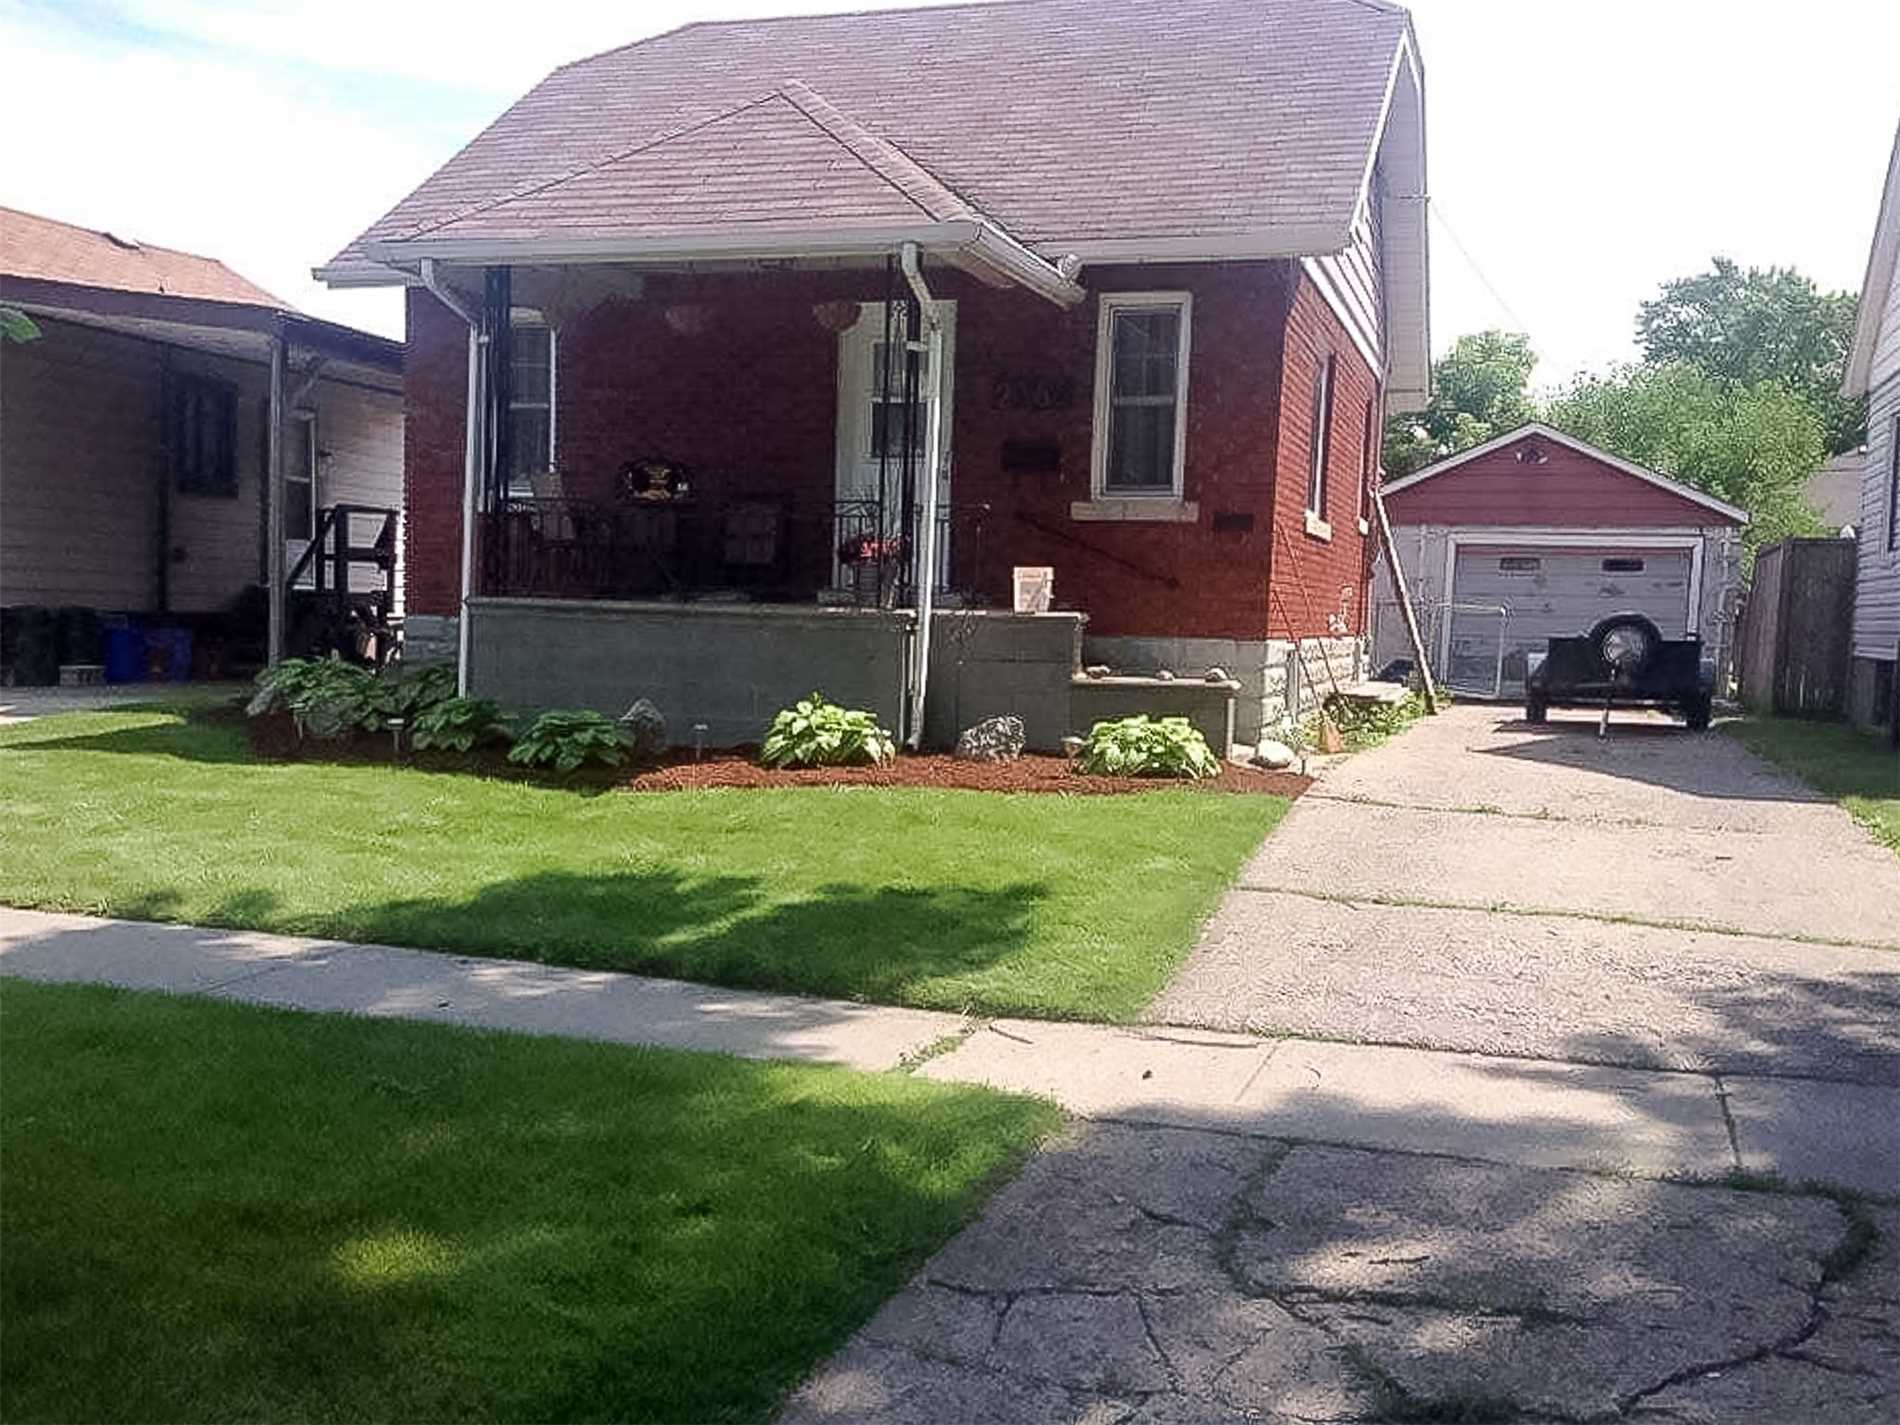 House for sale at 2366 Chandler Road Windsor Ontario - MLS: X4313459